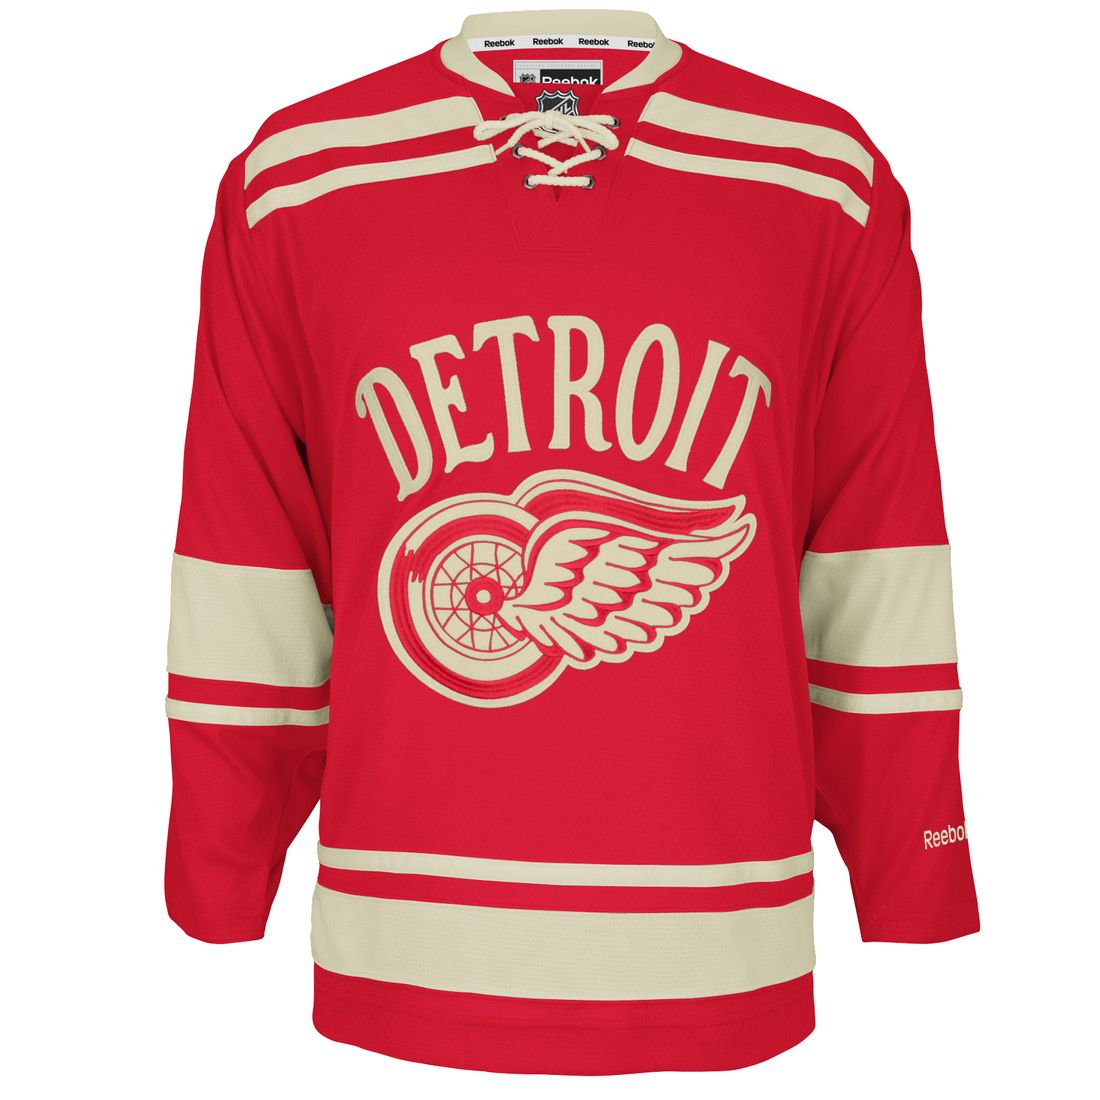 timeless design f2fd1 6f873 Detroit Red Wings 2014 Winter Classic jersey. | Sports Logos ...